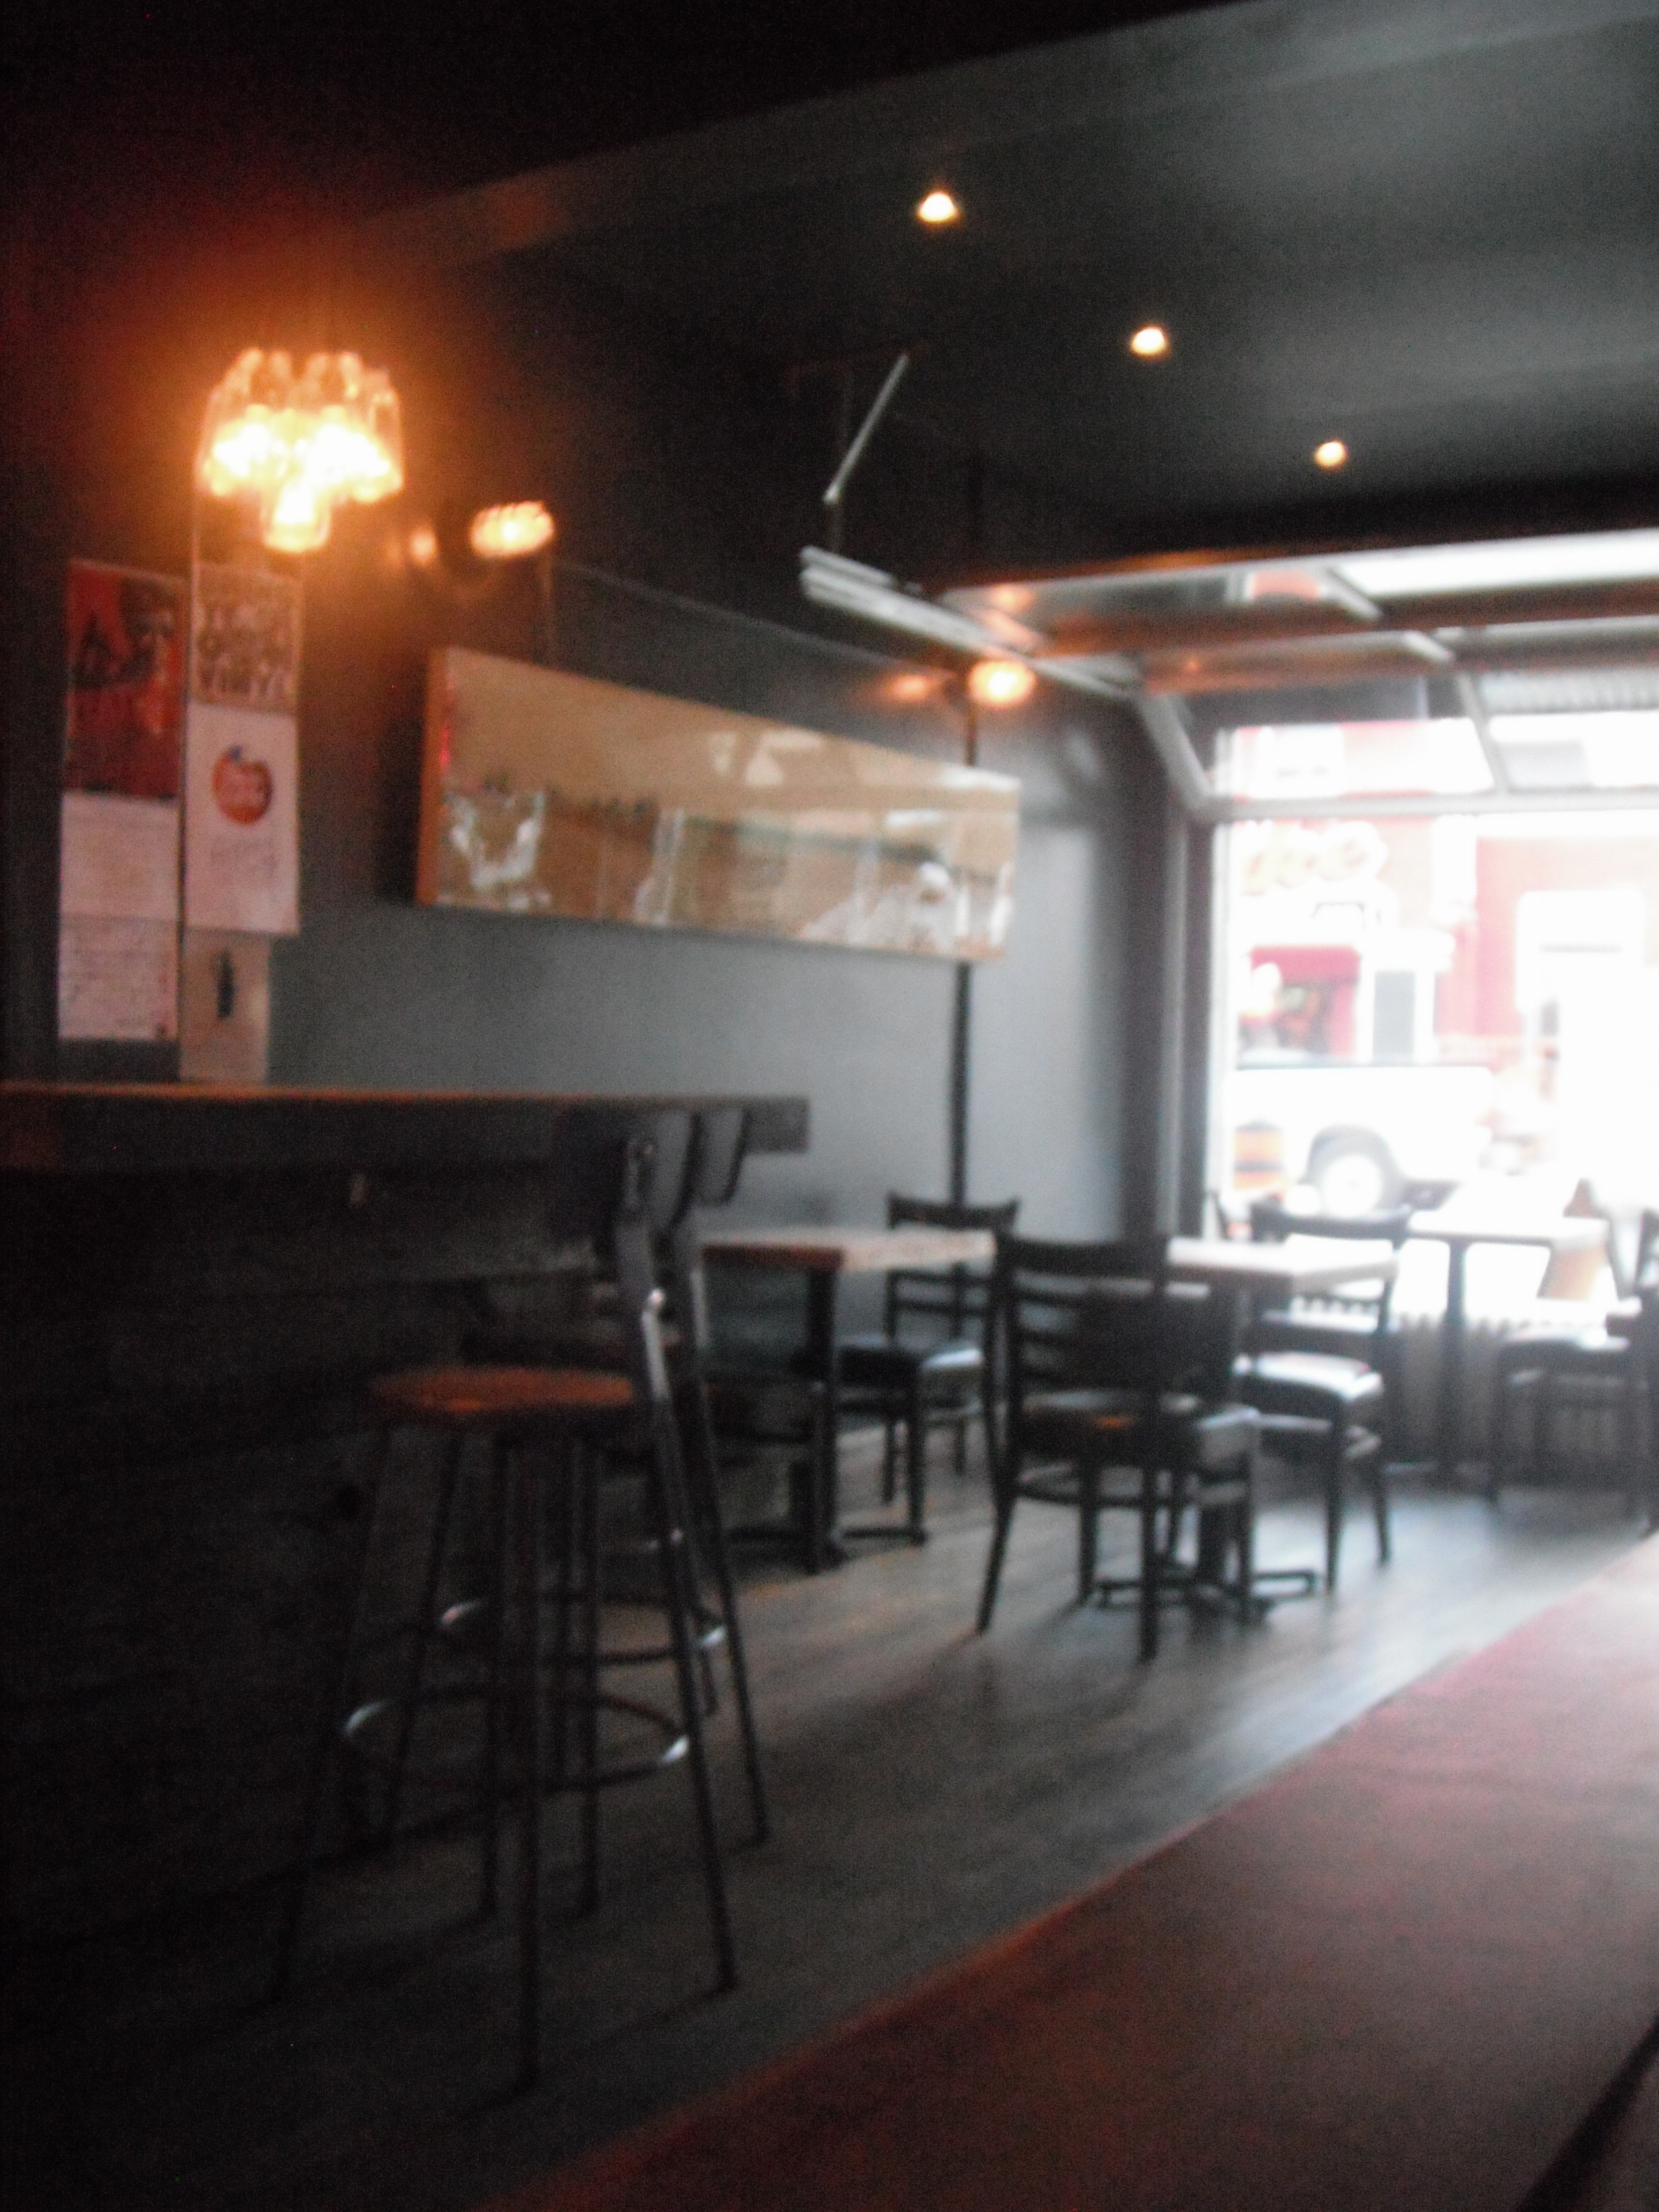 Picture of accessible interior of bar. Level floors, standard height tables.